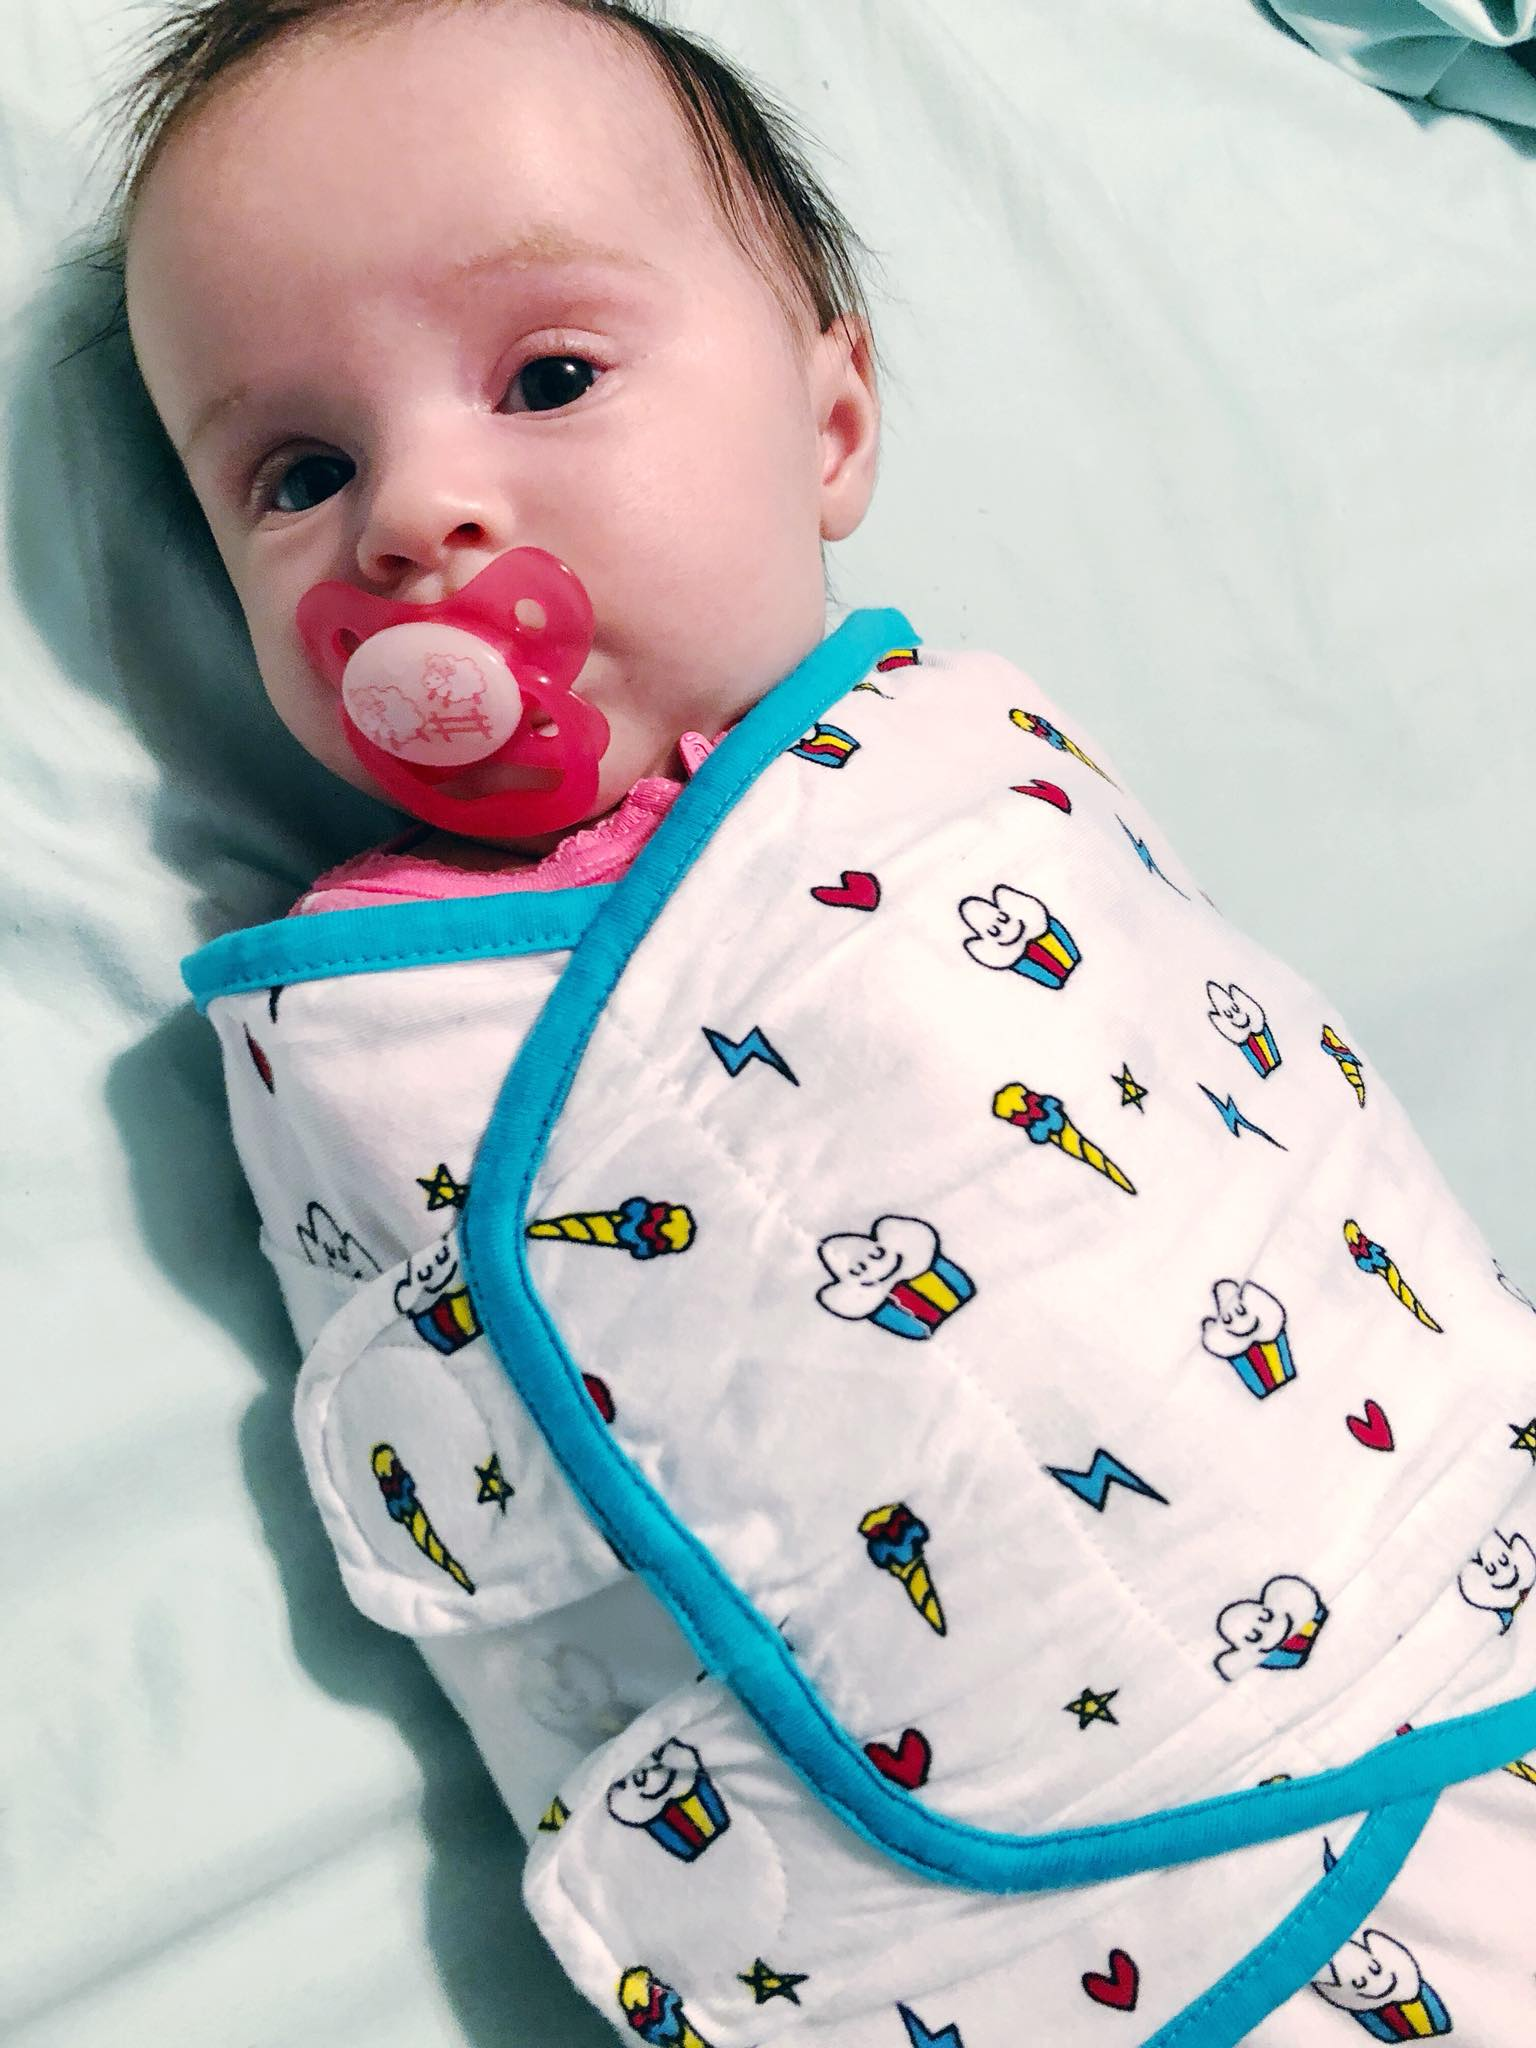 Amelie wearing her Ziggy Baby Cupcake Swaddle before bed